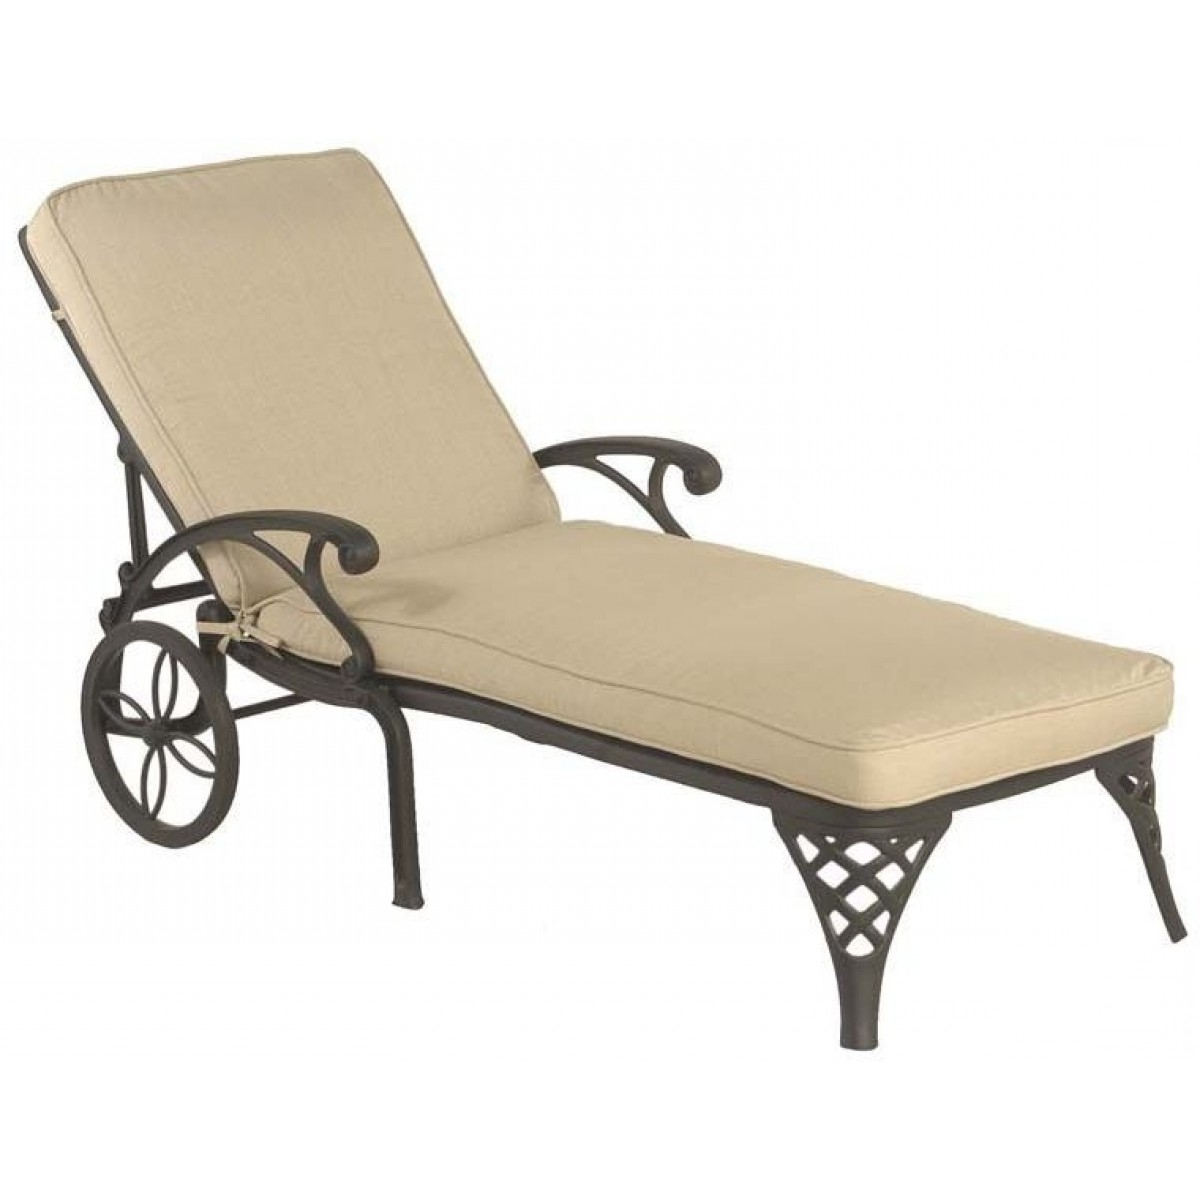 Patiosusa With Regard To Preferred Newport Chaise Lounge Chairs (View 10 of 15)